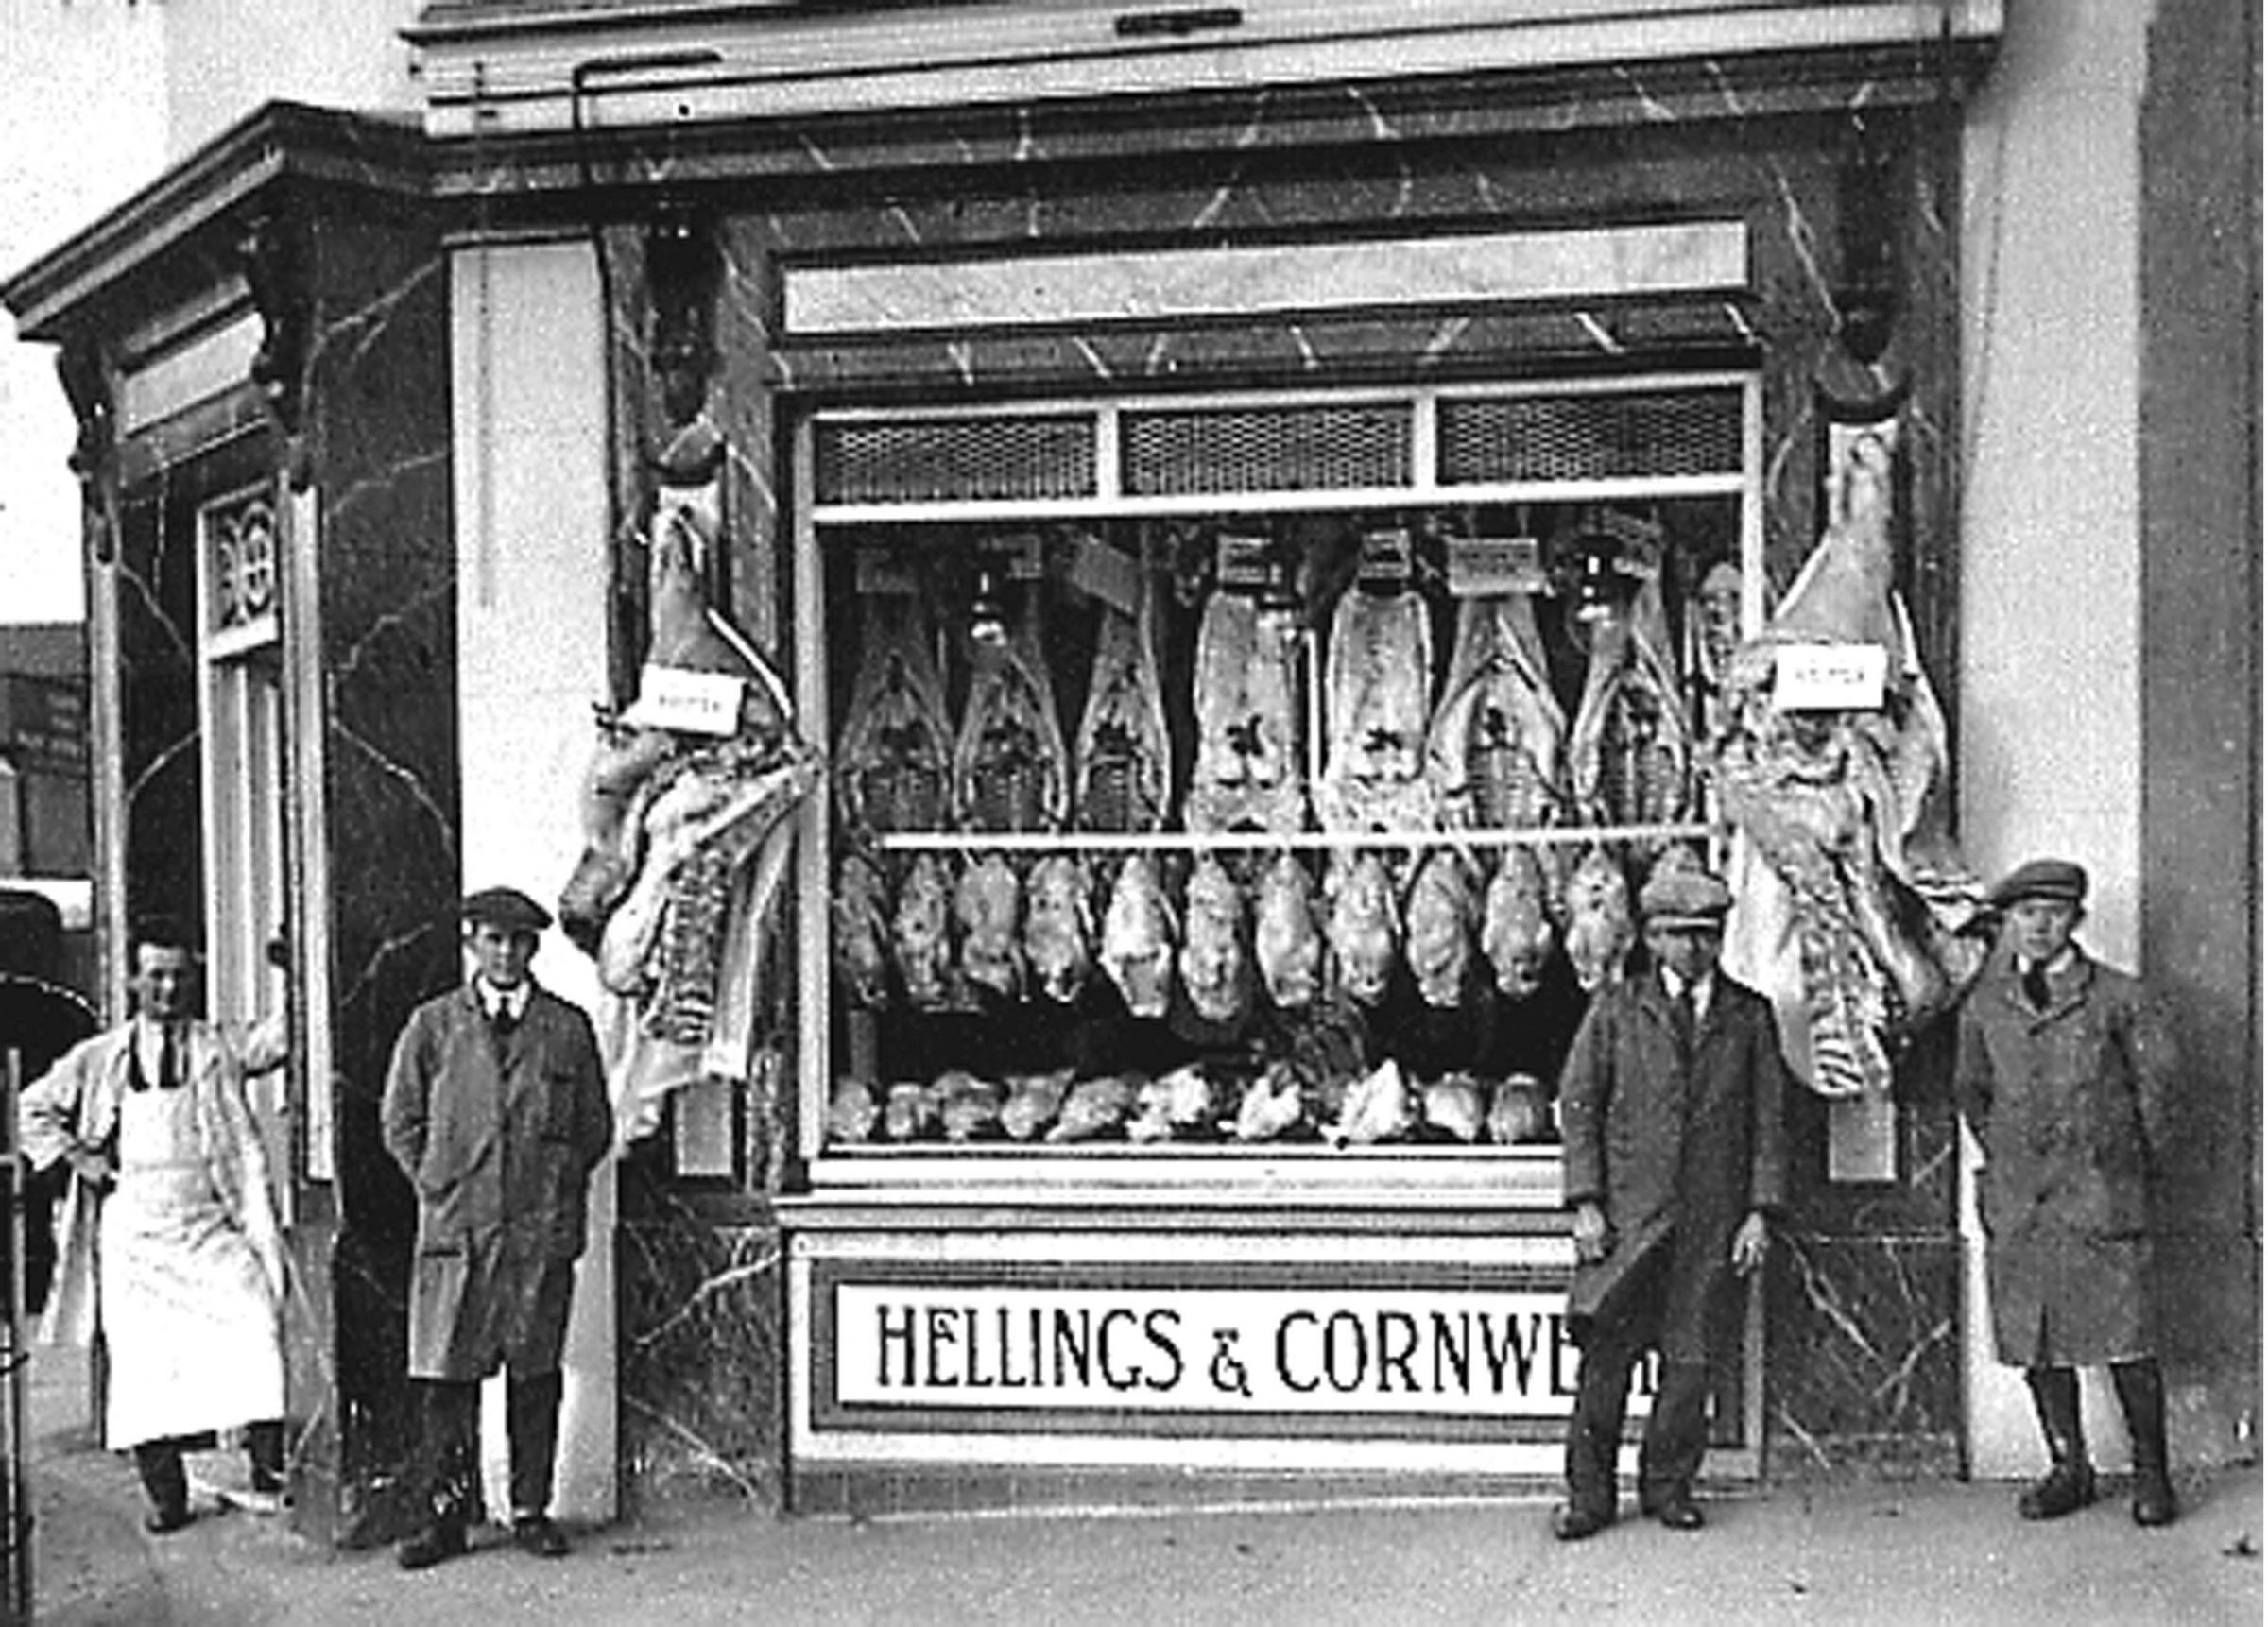 Hellings and Cornwall butchers.